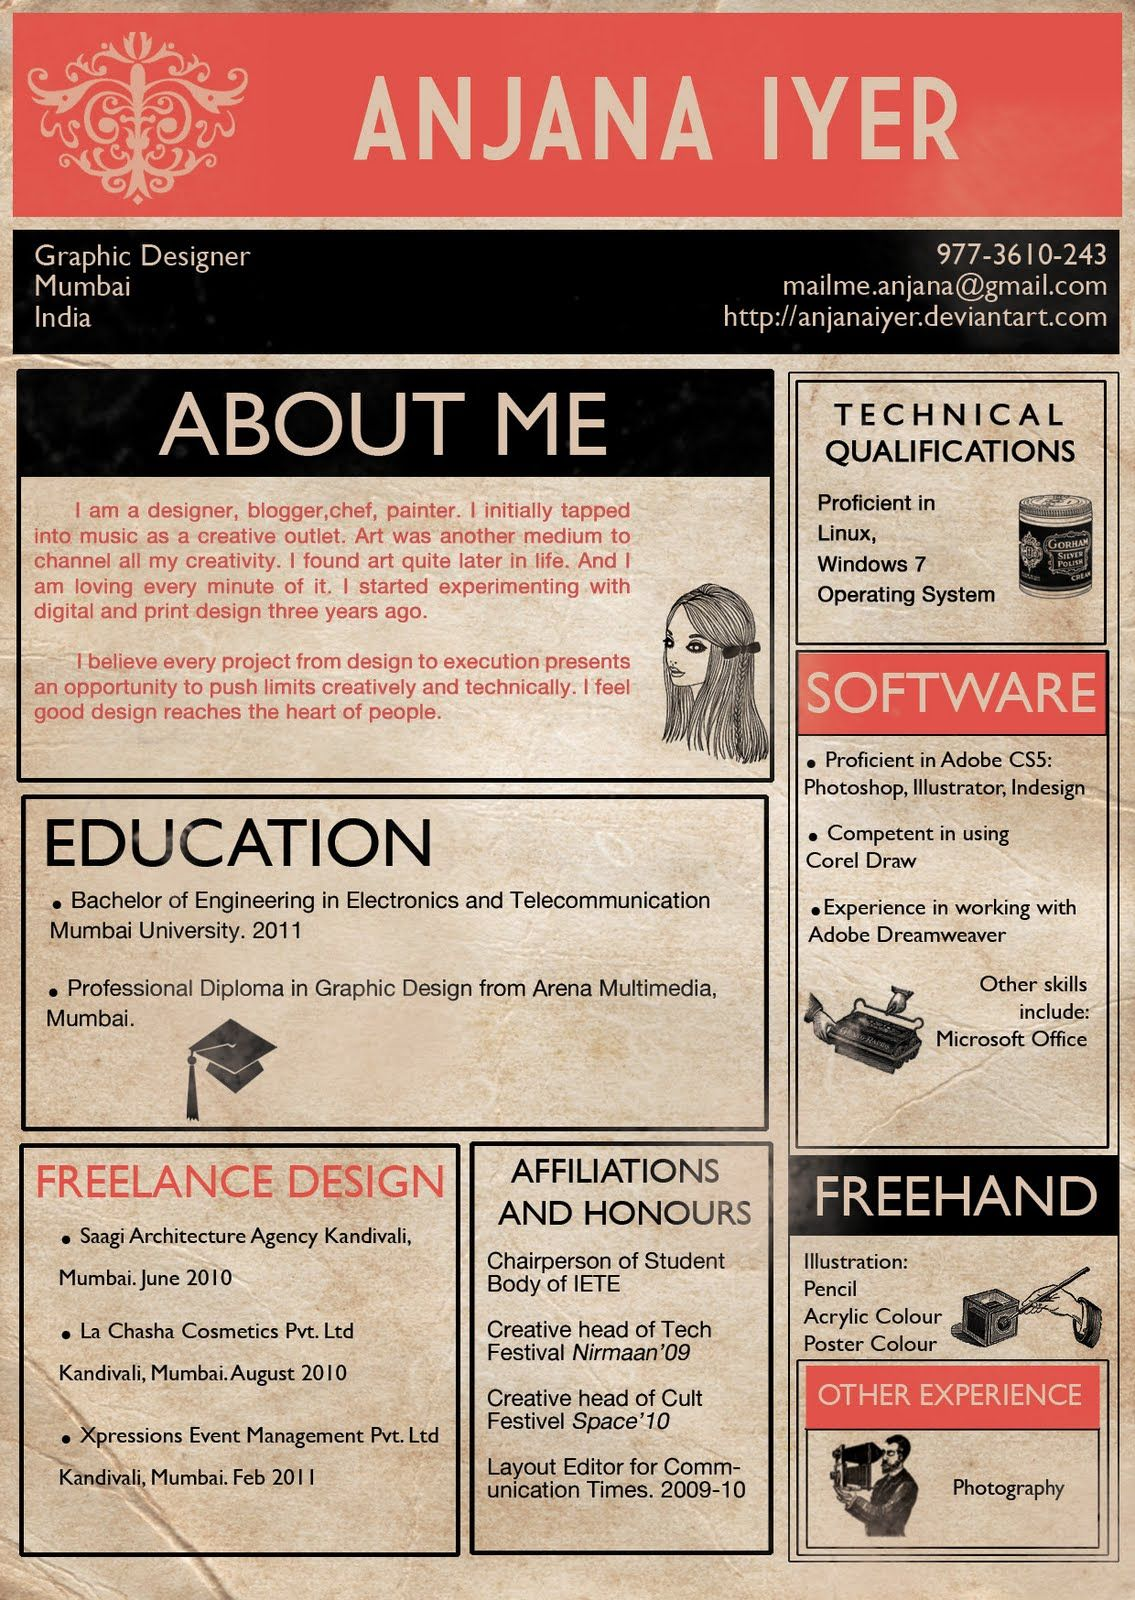 best images about infographic cv s infographic 17 best images about infographic cv s infographic resume creative resume and cv design